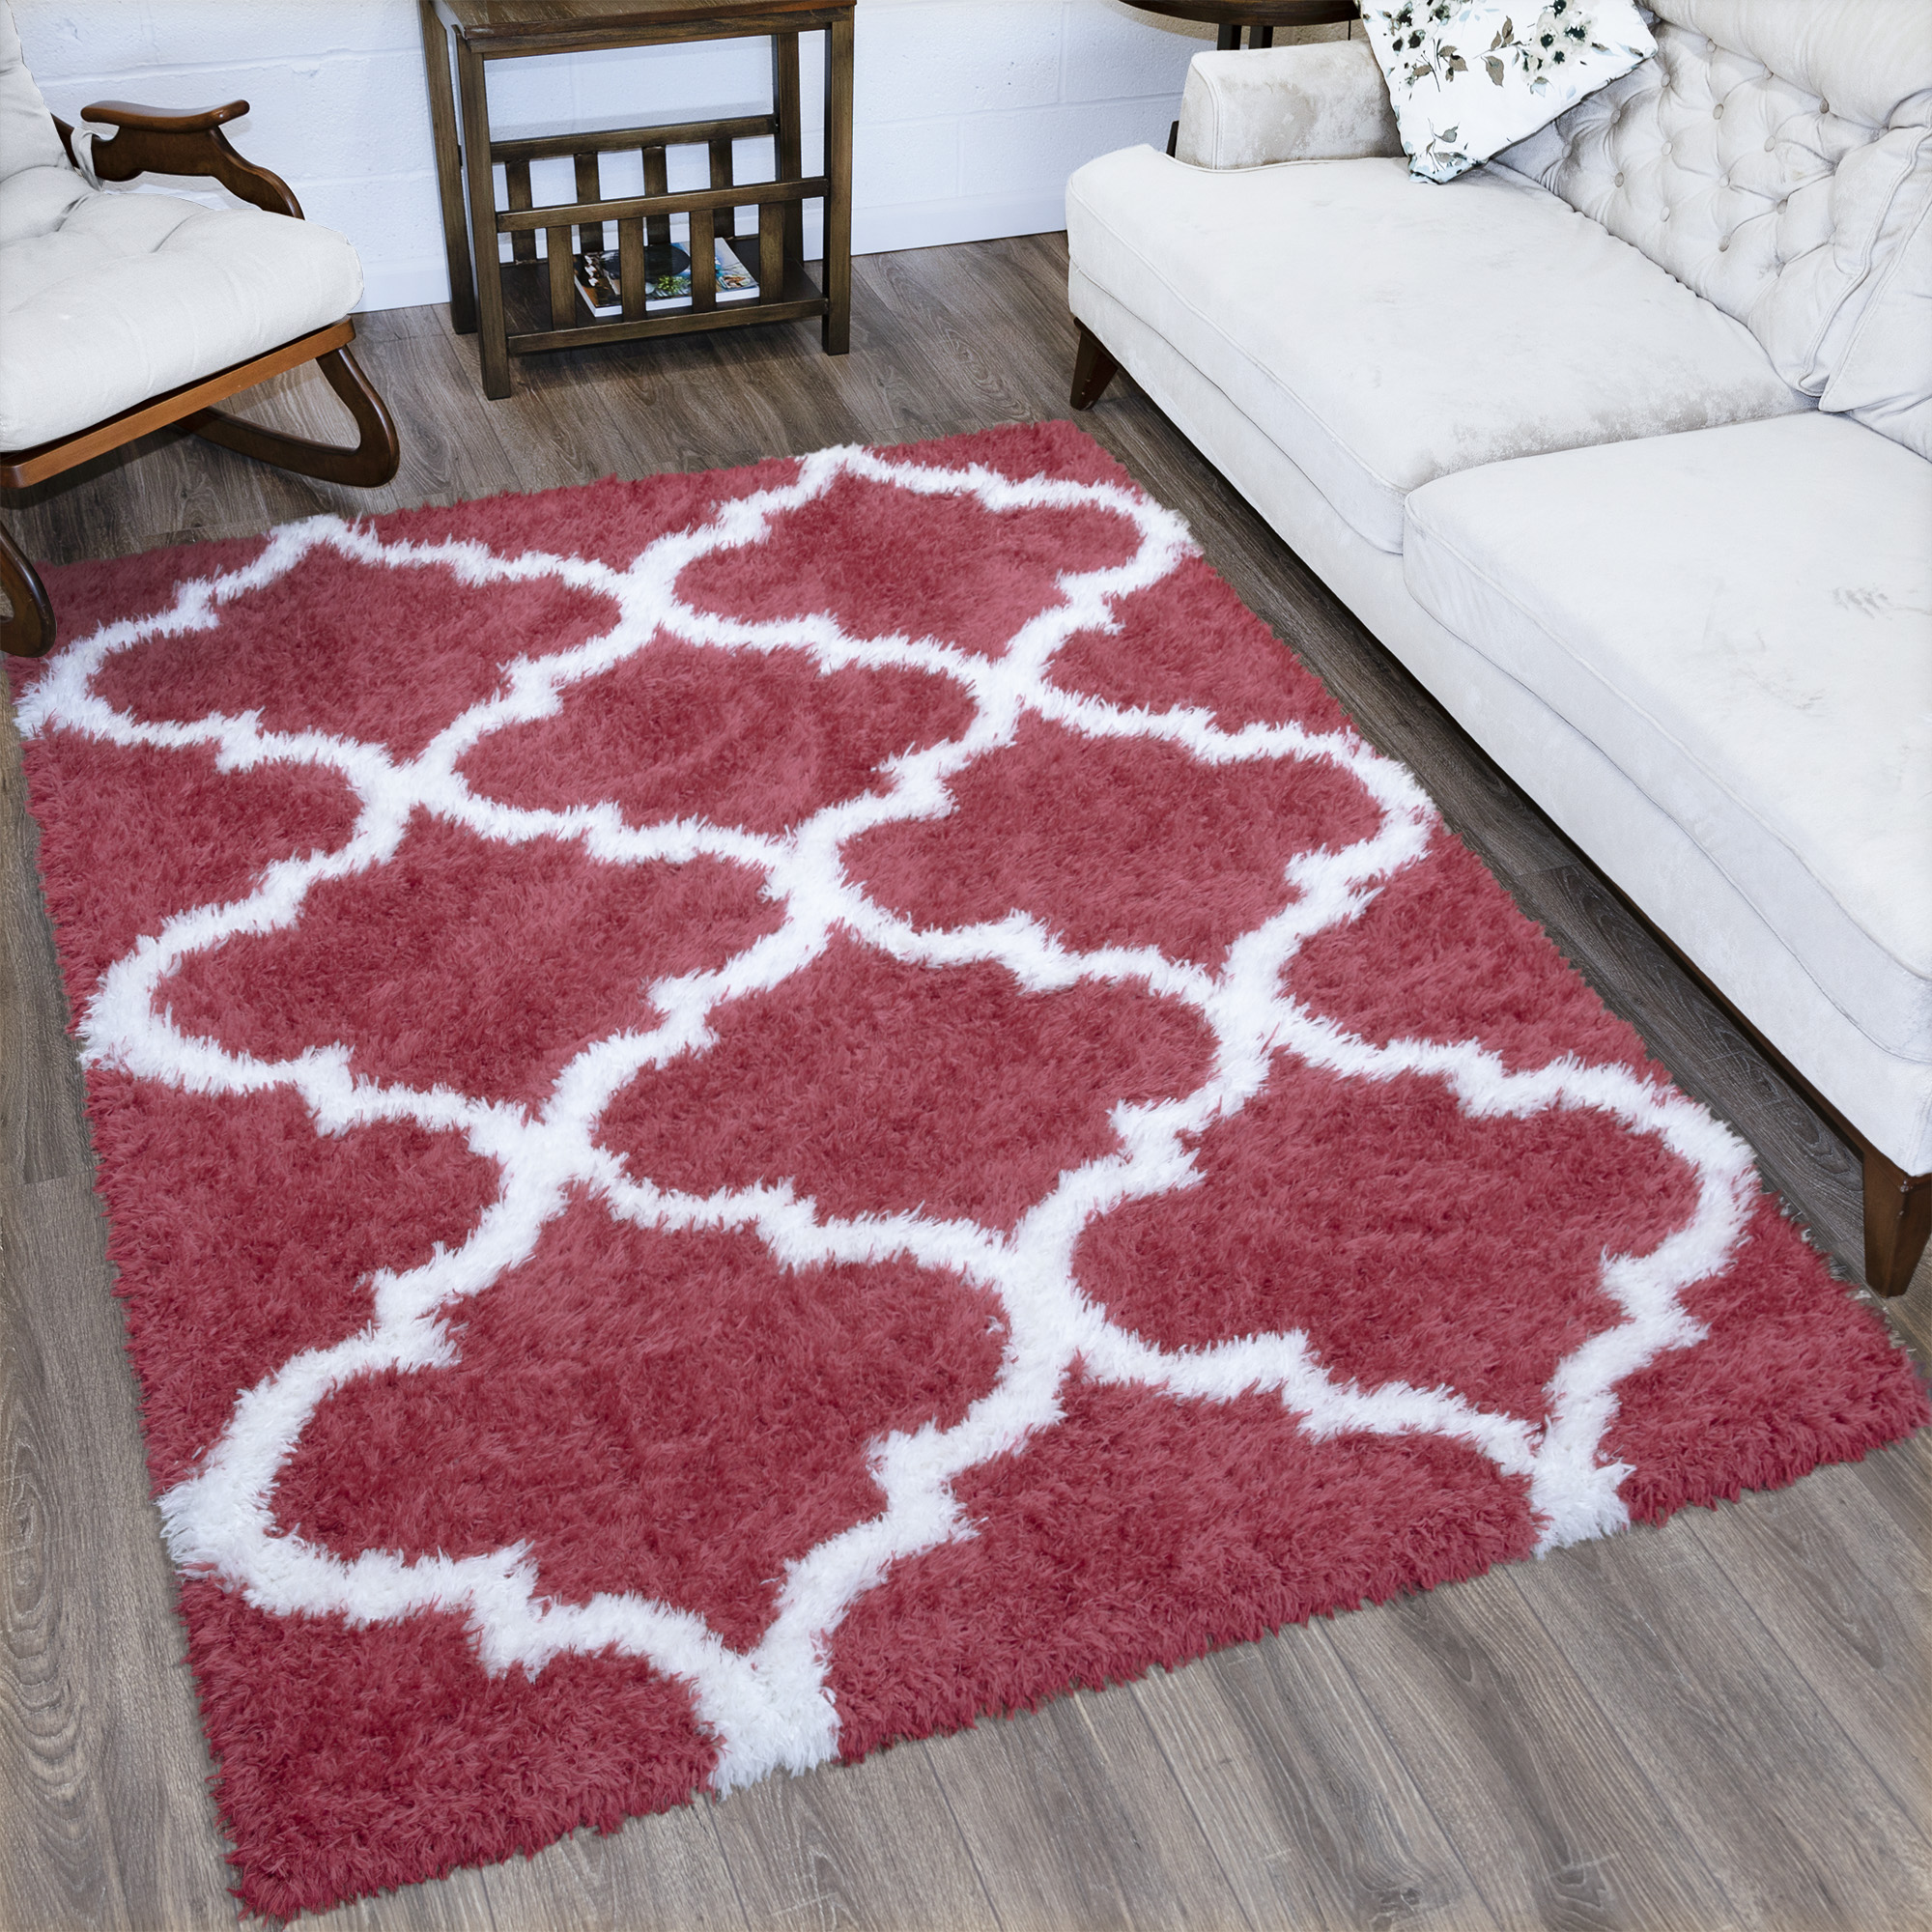 Ottomanson Flokati Collection Faux Sheepskin Trellis Shag Area or Runner Rug